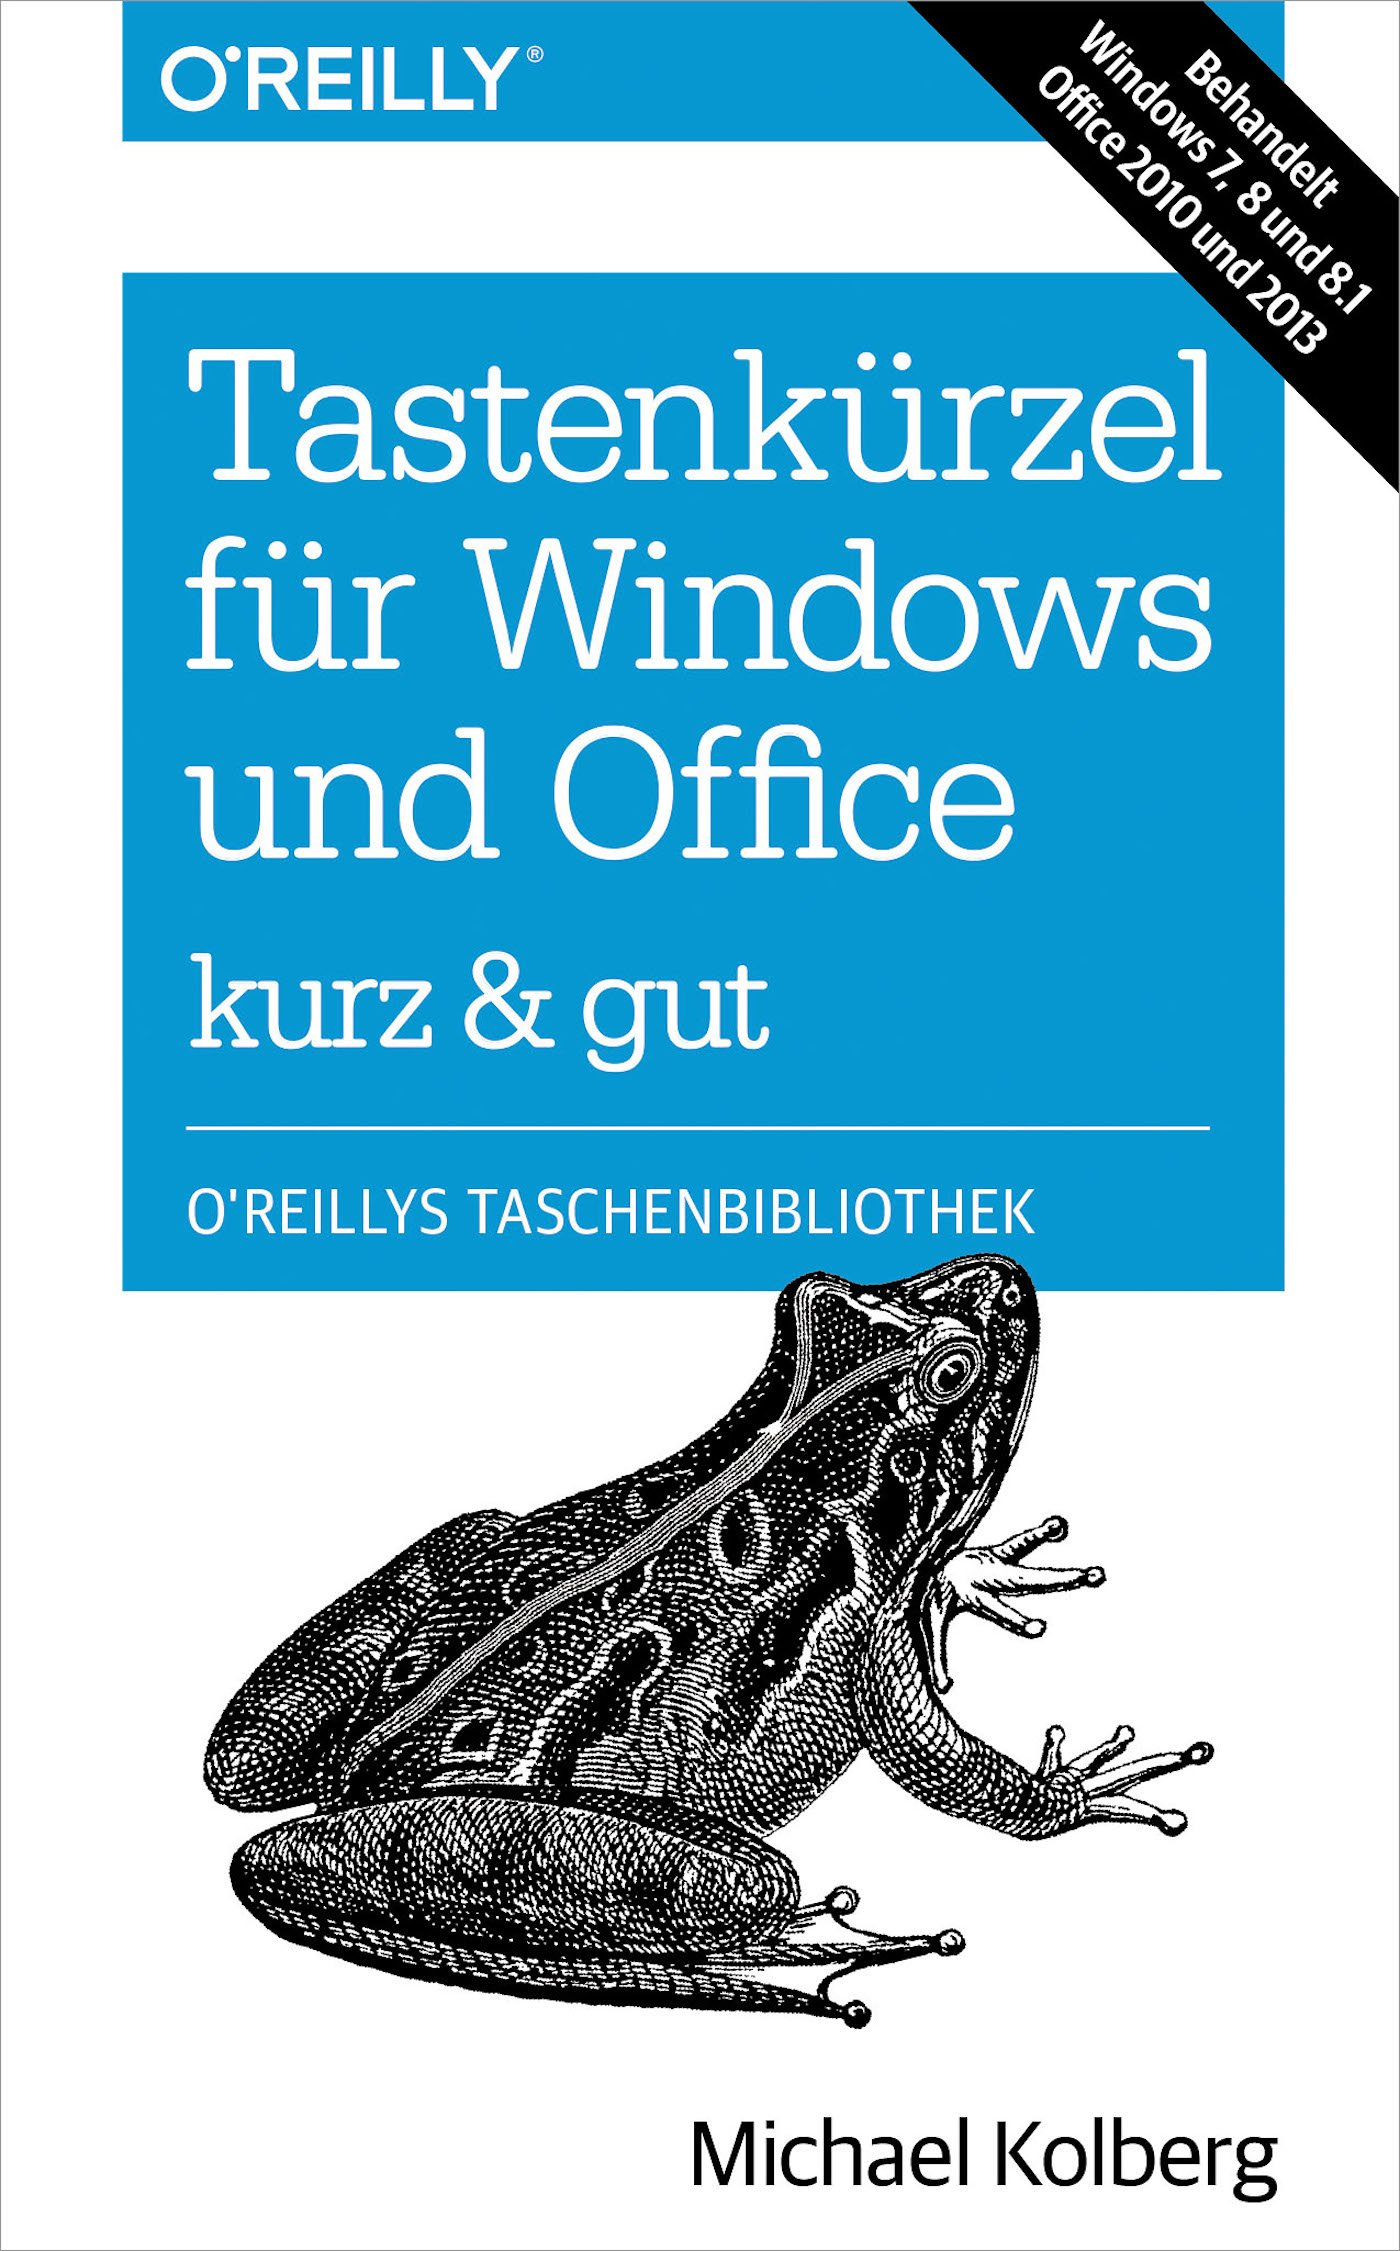 Tastenkürzel Für Windows & Office - Kurz & Gut (O'Reillys Taschenbibliothek) (German Edition)